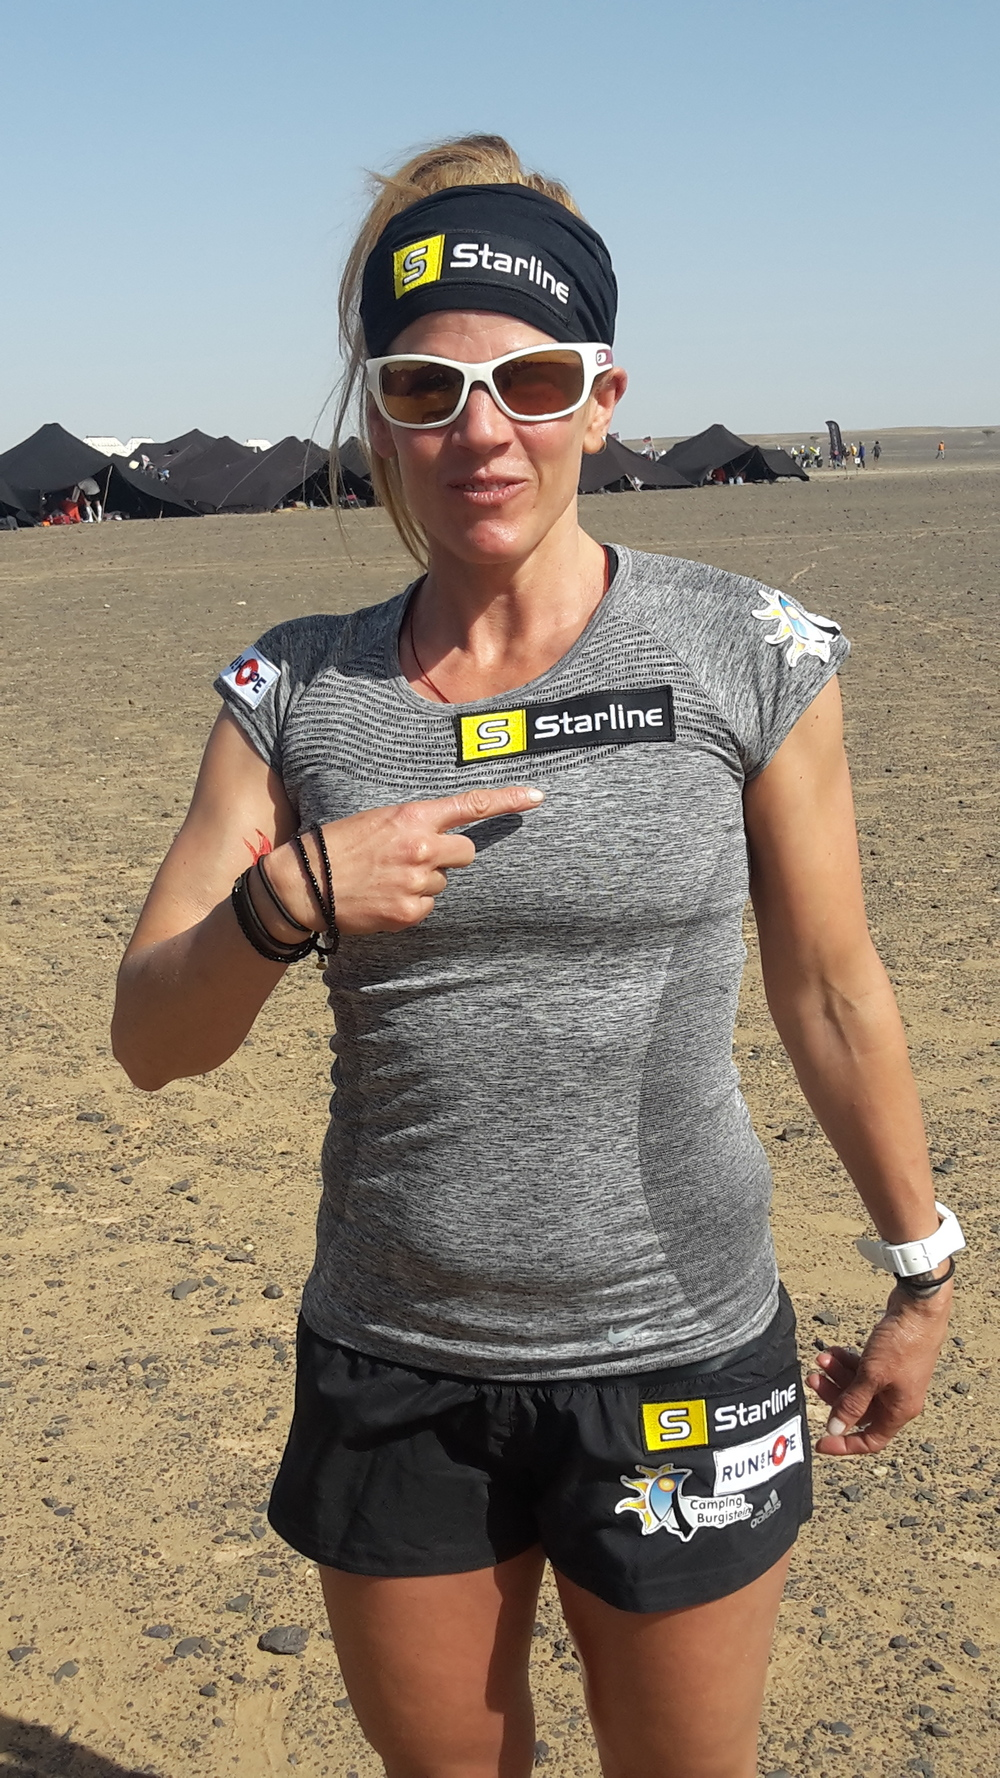 Brigitte Daxelhoffer, 38, bestreitet vom 10.-16. April 2016 die 257 km des Marathon des Sables für 428 Kinder in Nepal. Powered by Starline.  www.run-for-hope.ch